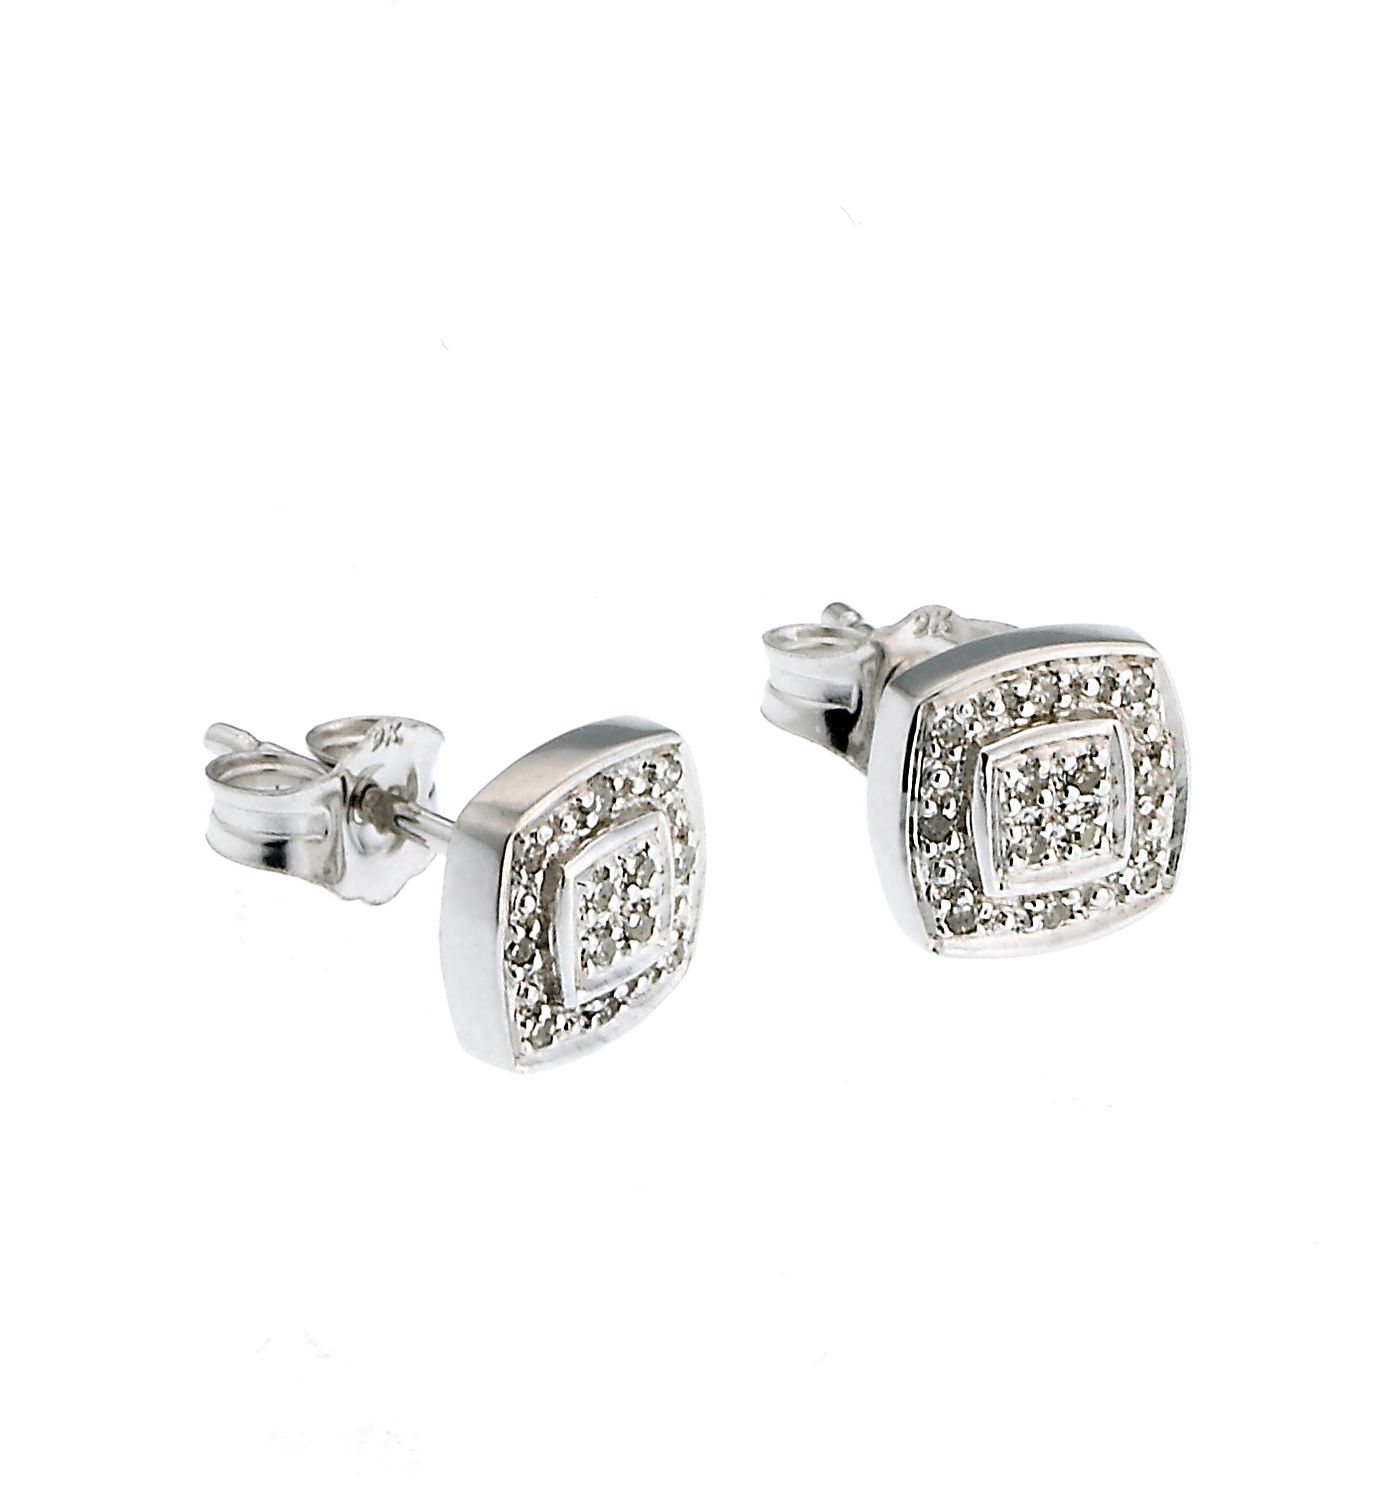 9ct White Gold 0.10ct Total Diamond Cluster Stud Earrings - Product number 6715079